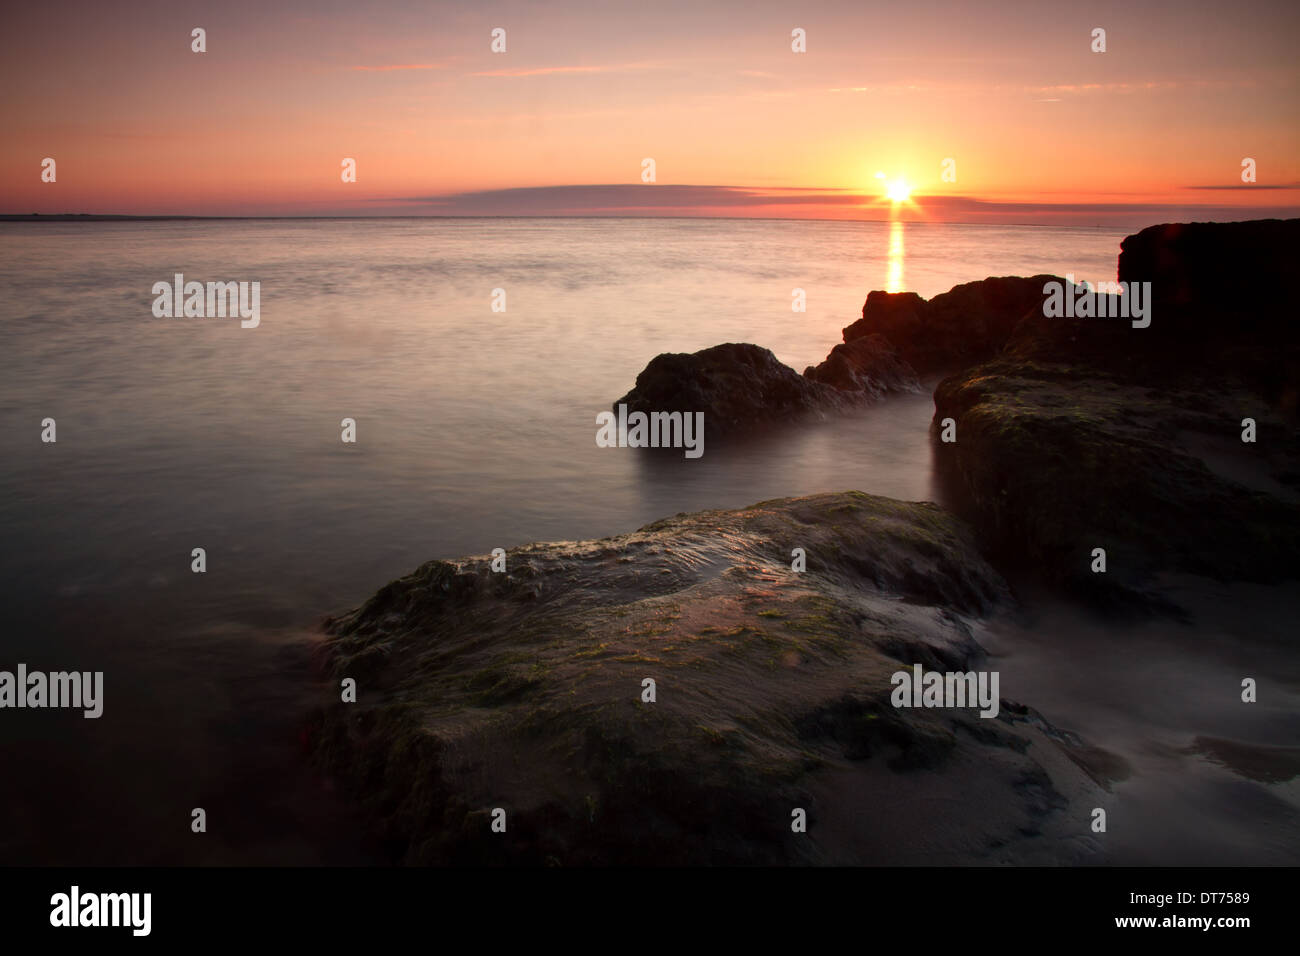 Sunrise over the rocks on the beach. - Stock Image